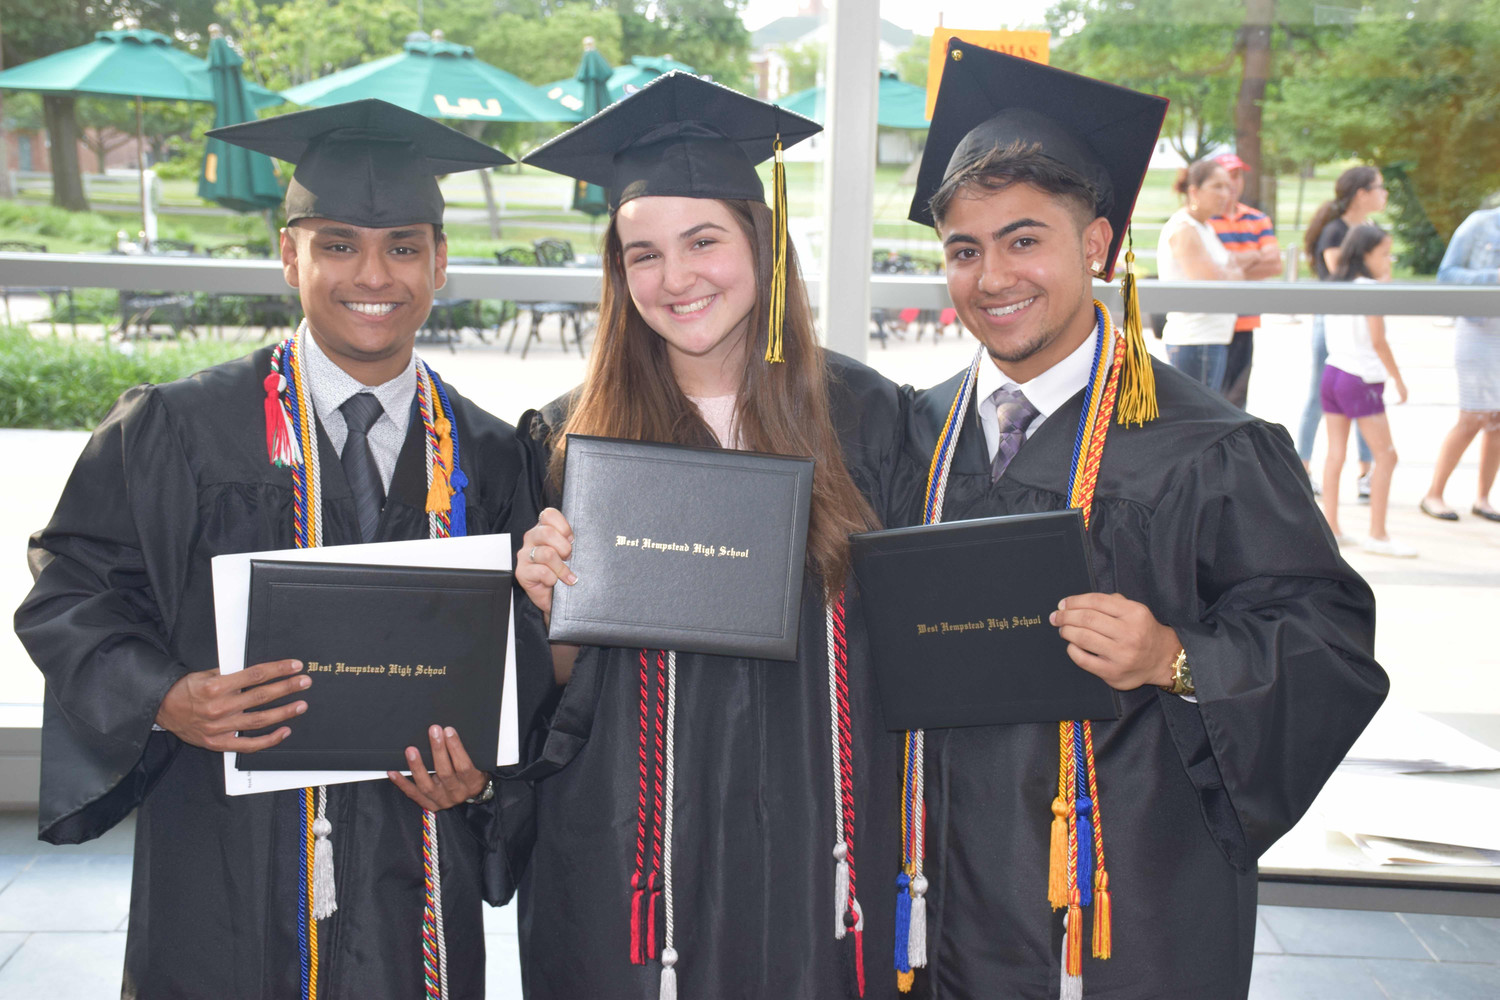 Valedictorian Shadman Syed, left, Class President Sydney Hoffman and salutatorian Lee Boodoo were among West Hempstead High School's class of 2018, whose graduation ceremony was held at LIU Post last Sunday.